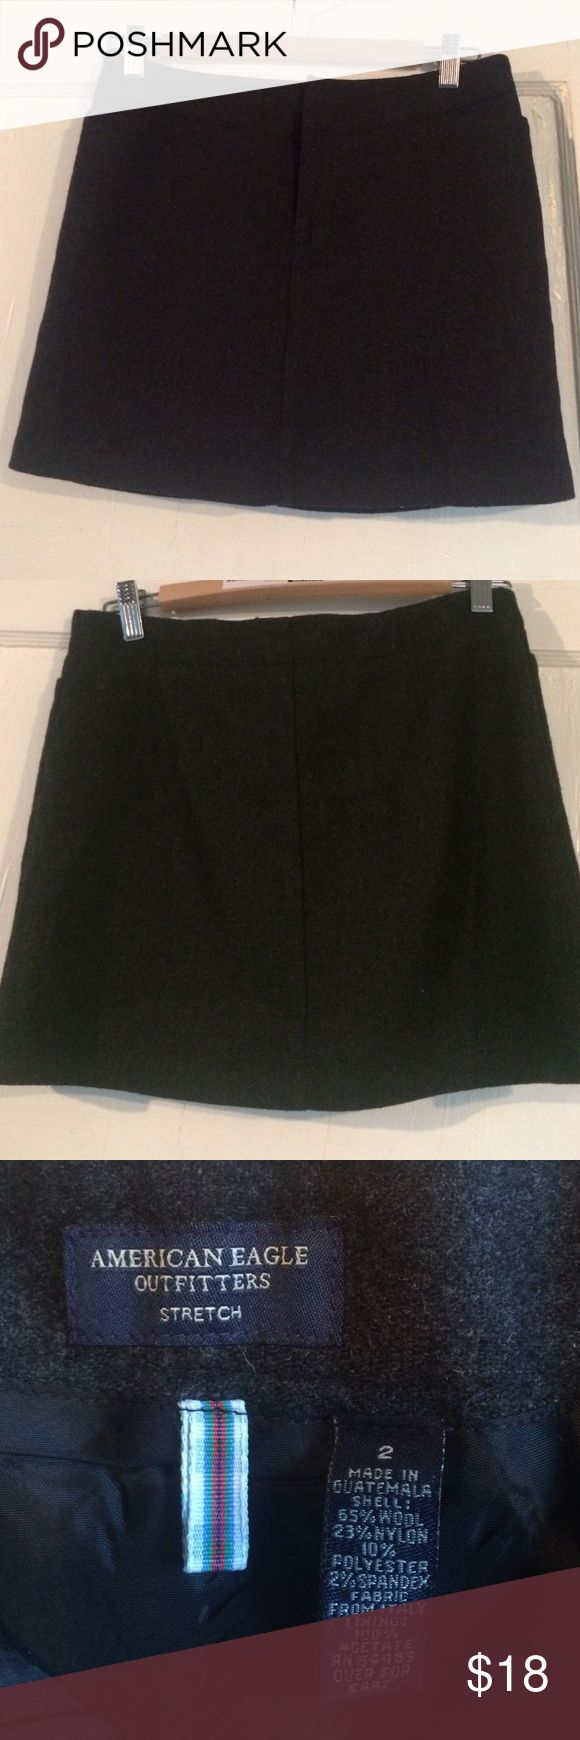 """Charcoal wool mini skirt American Eagle Outfitters NWOT never worn. 14"""" long. Style basic for winter! American Eagle Outfitters Skirts Mini"""